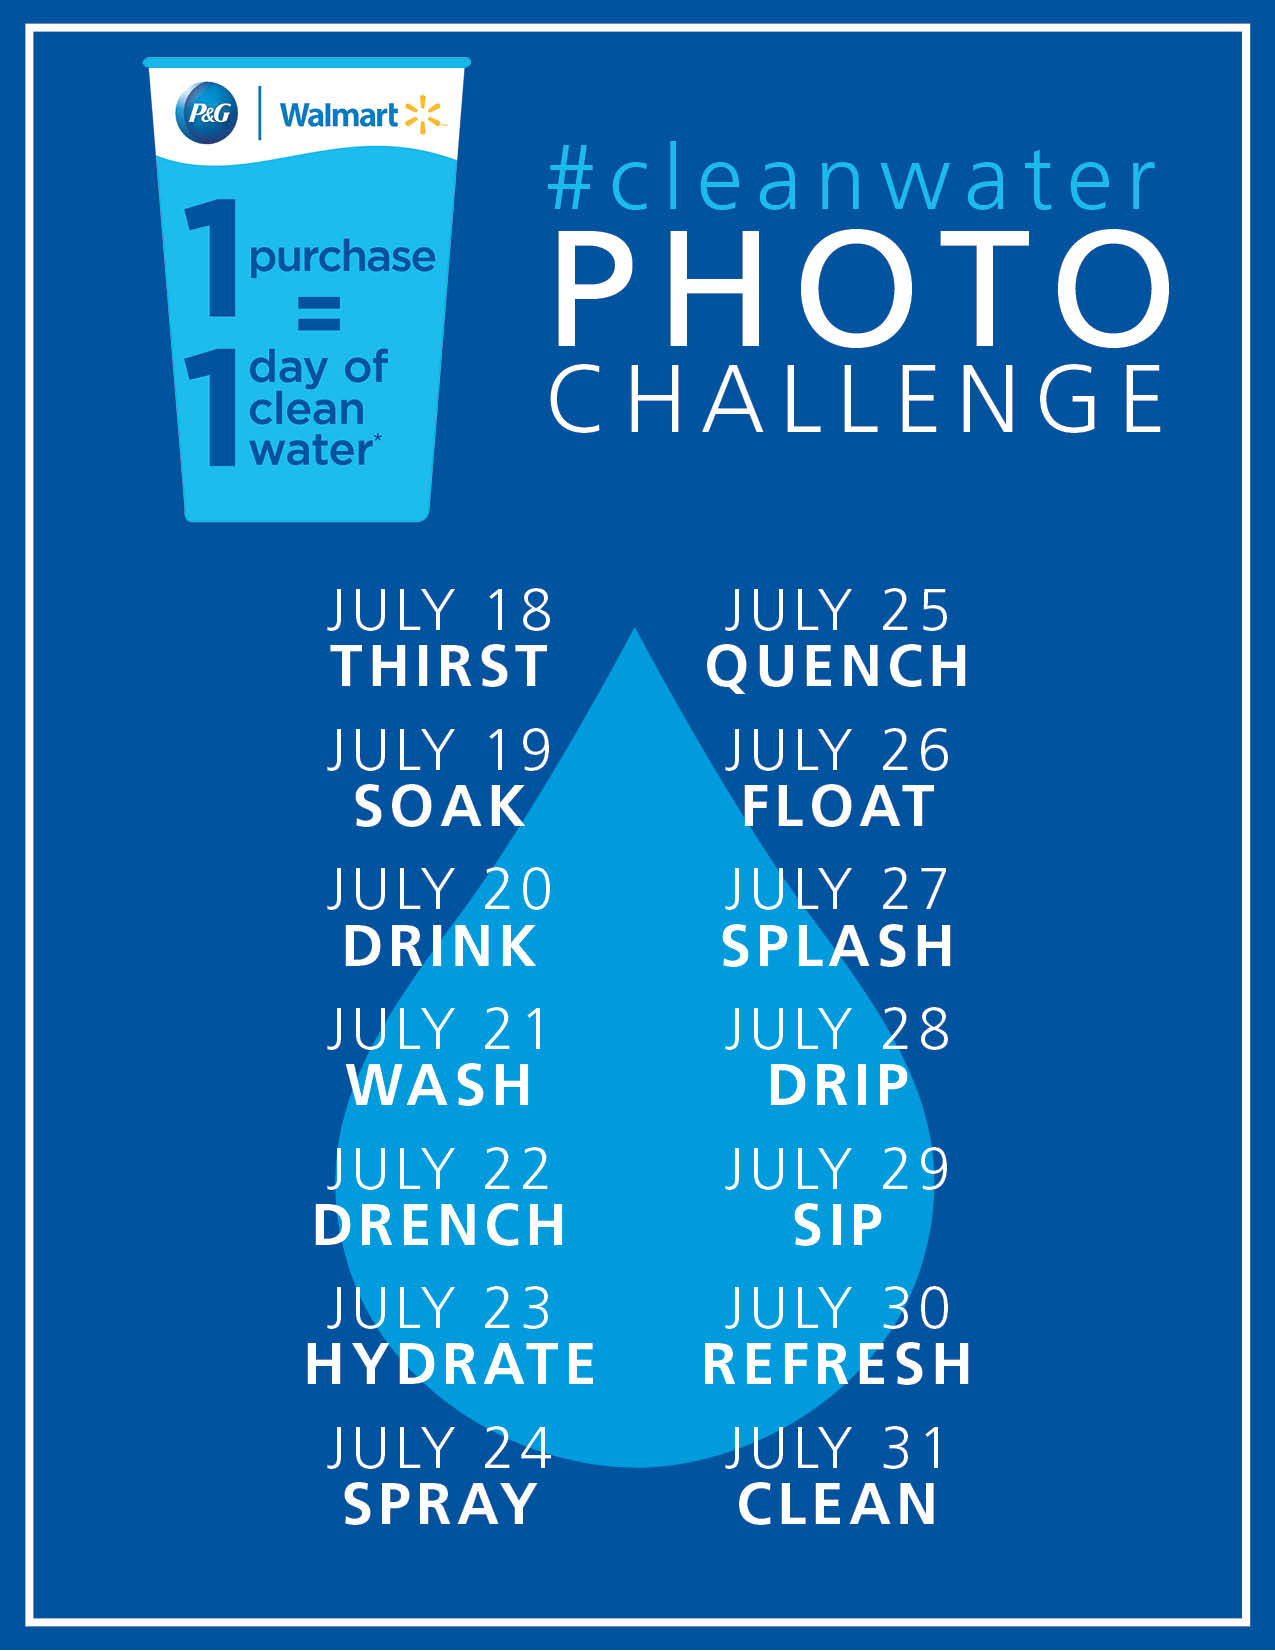 cleanwater photo challenge